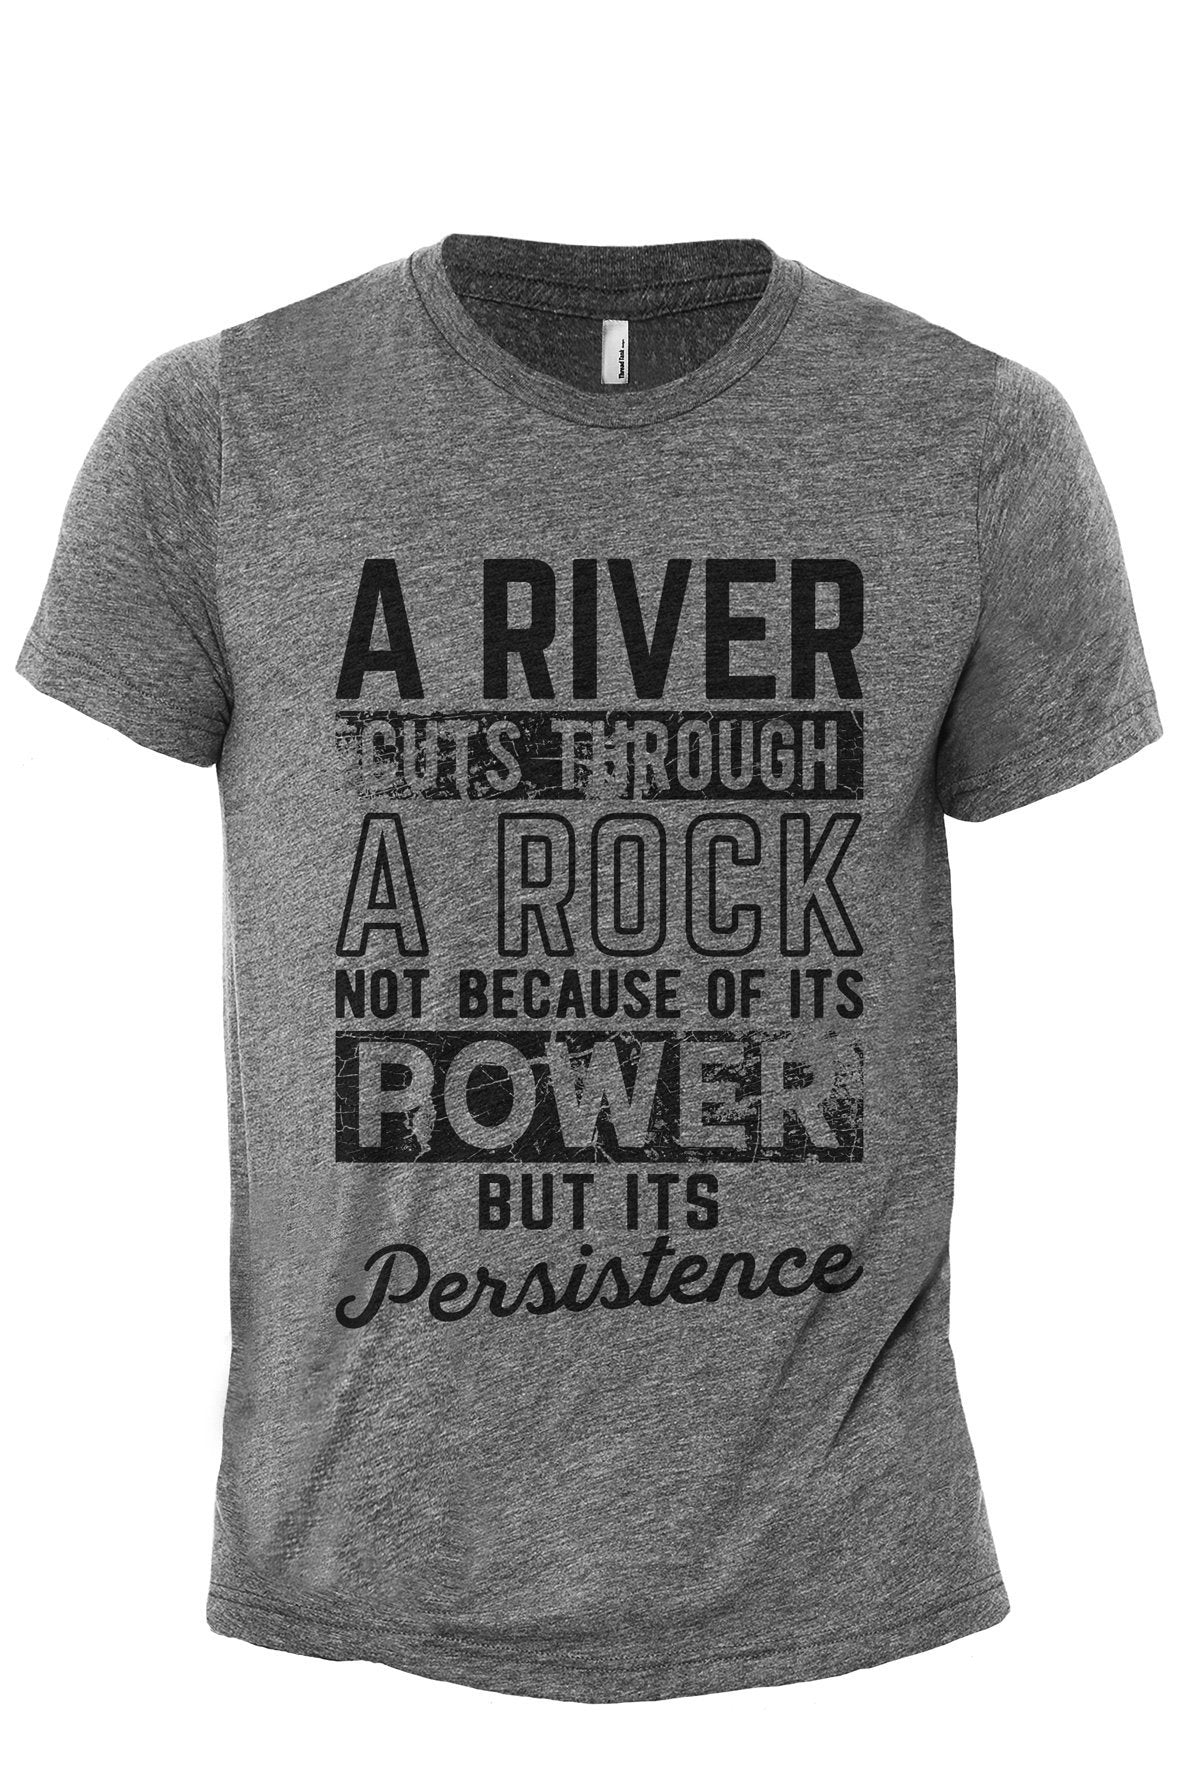 A River Cuts Through A Rock Not Because Of It's Power But It's Persistence Heather Grey Printed Graphic Men's Crew T-Shirt Tee